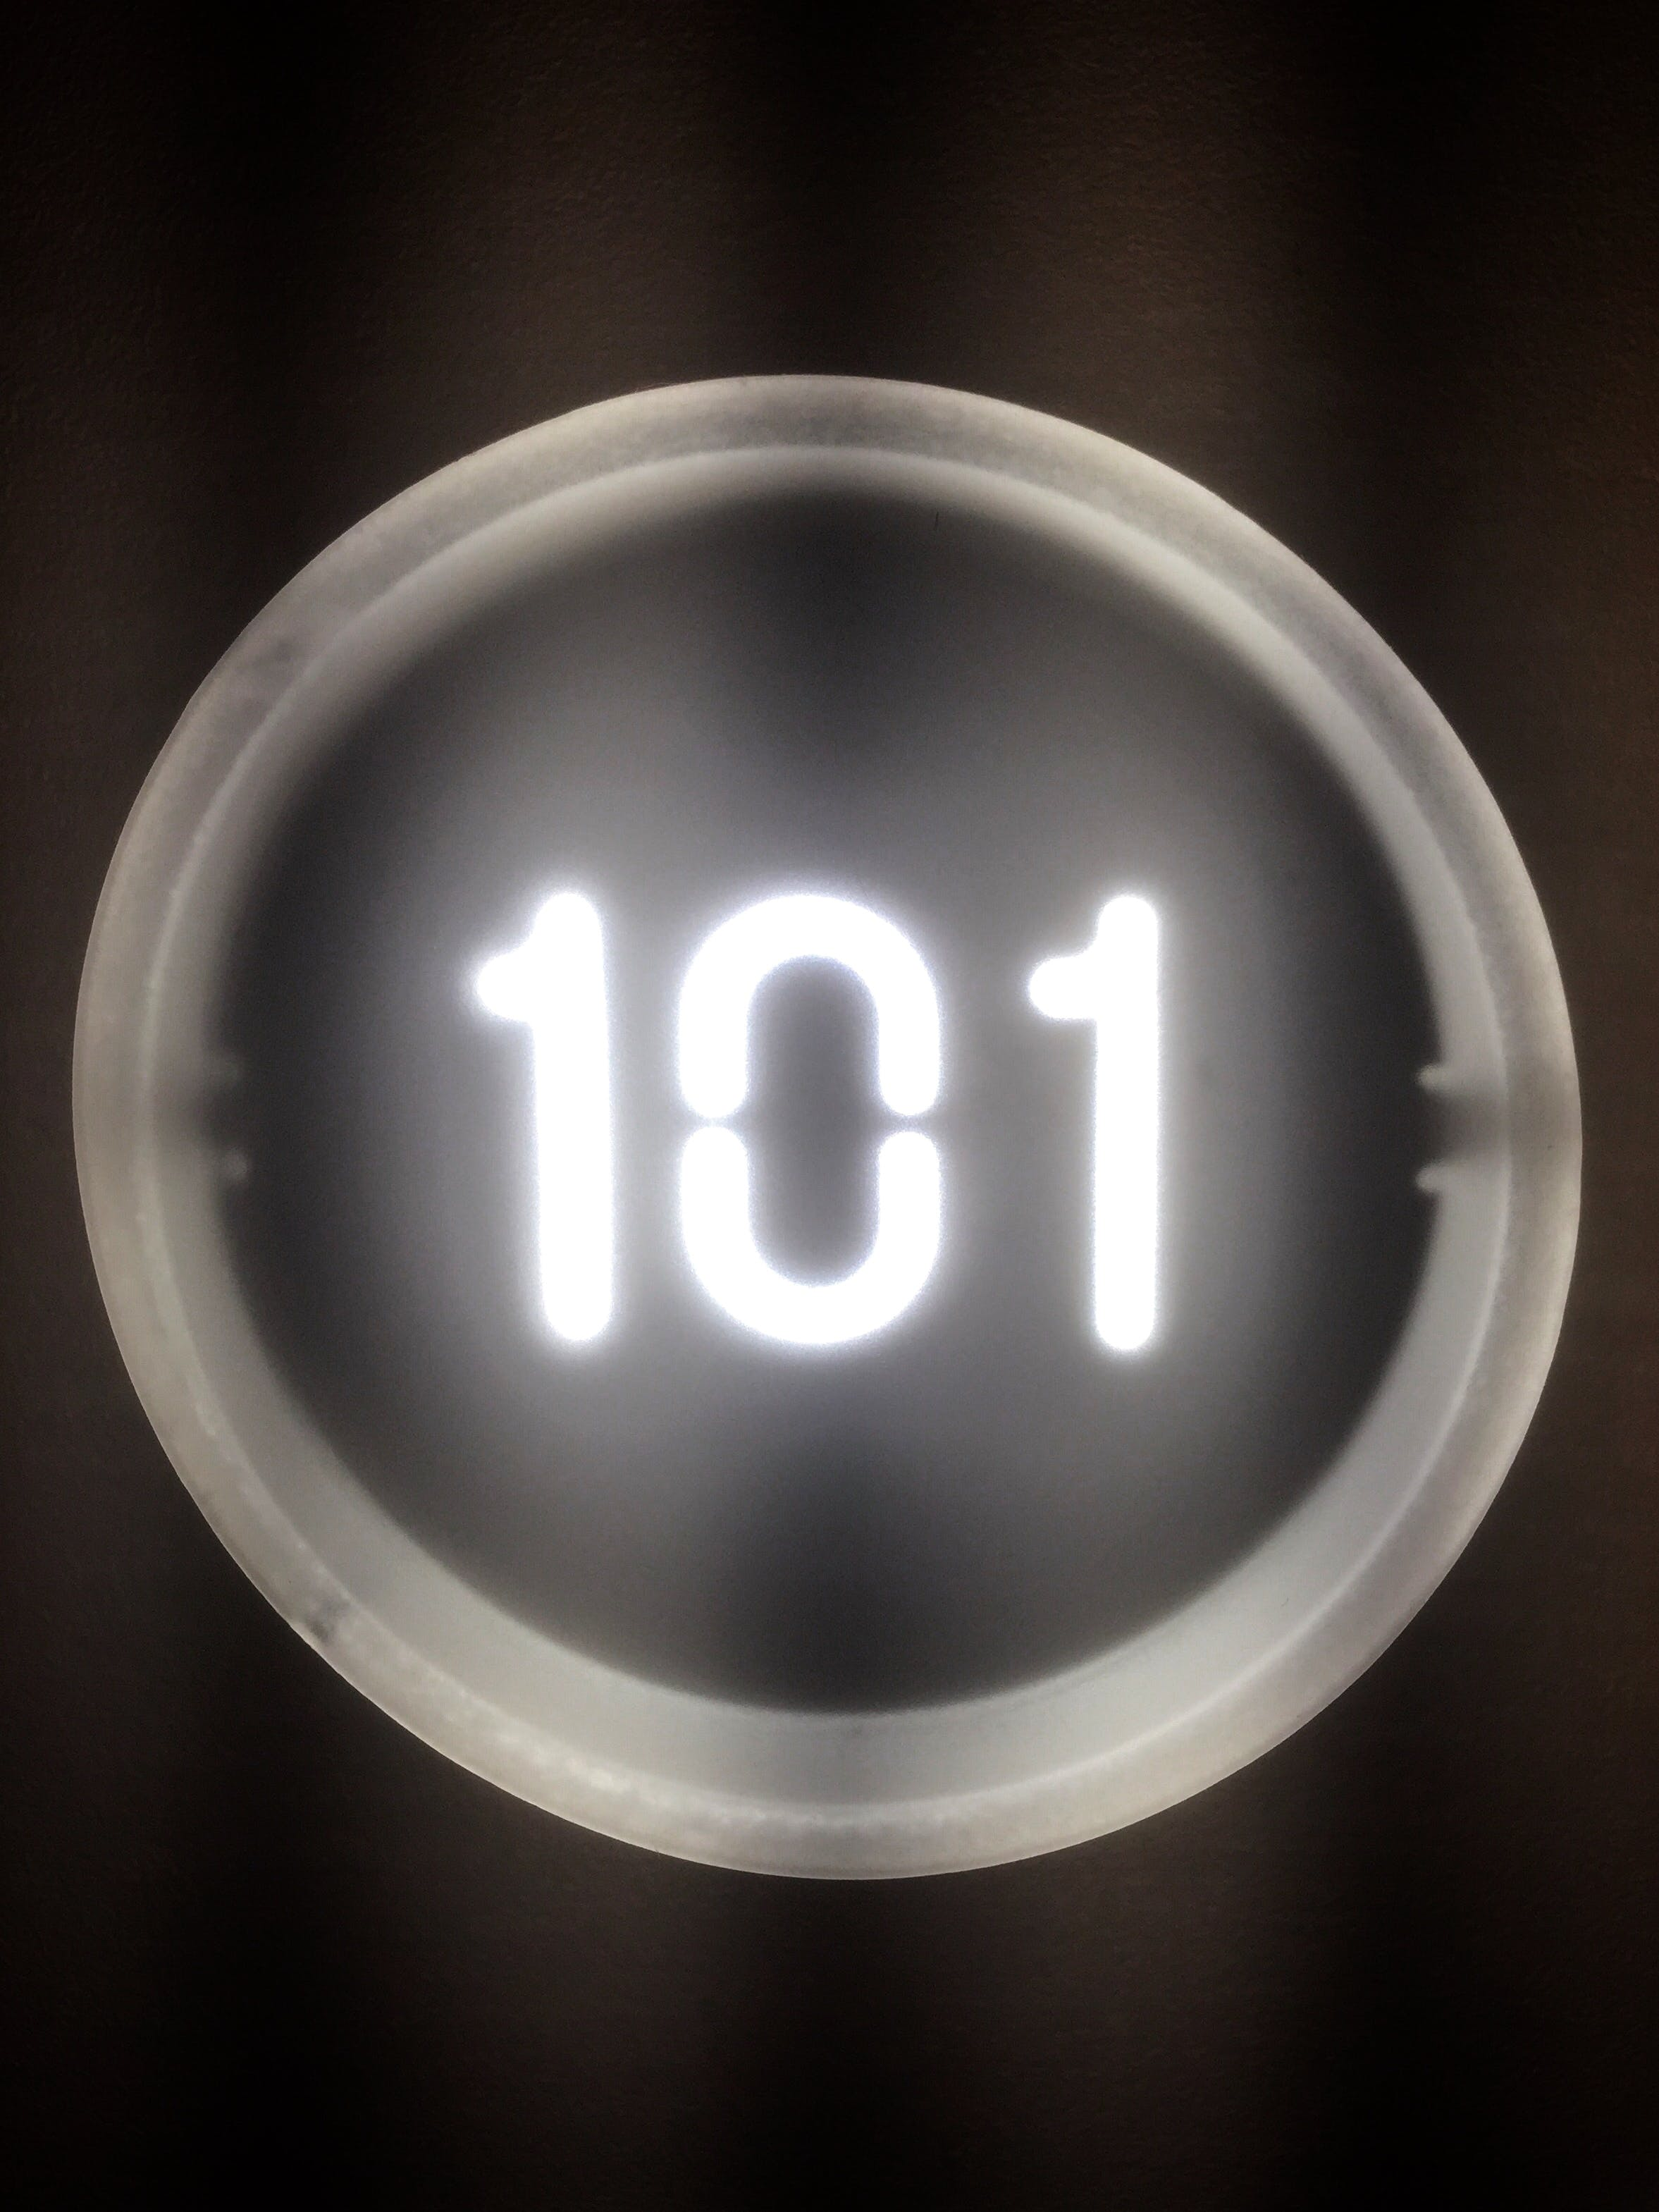 Free stock photo of 101, hotel room, room 101